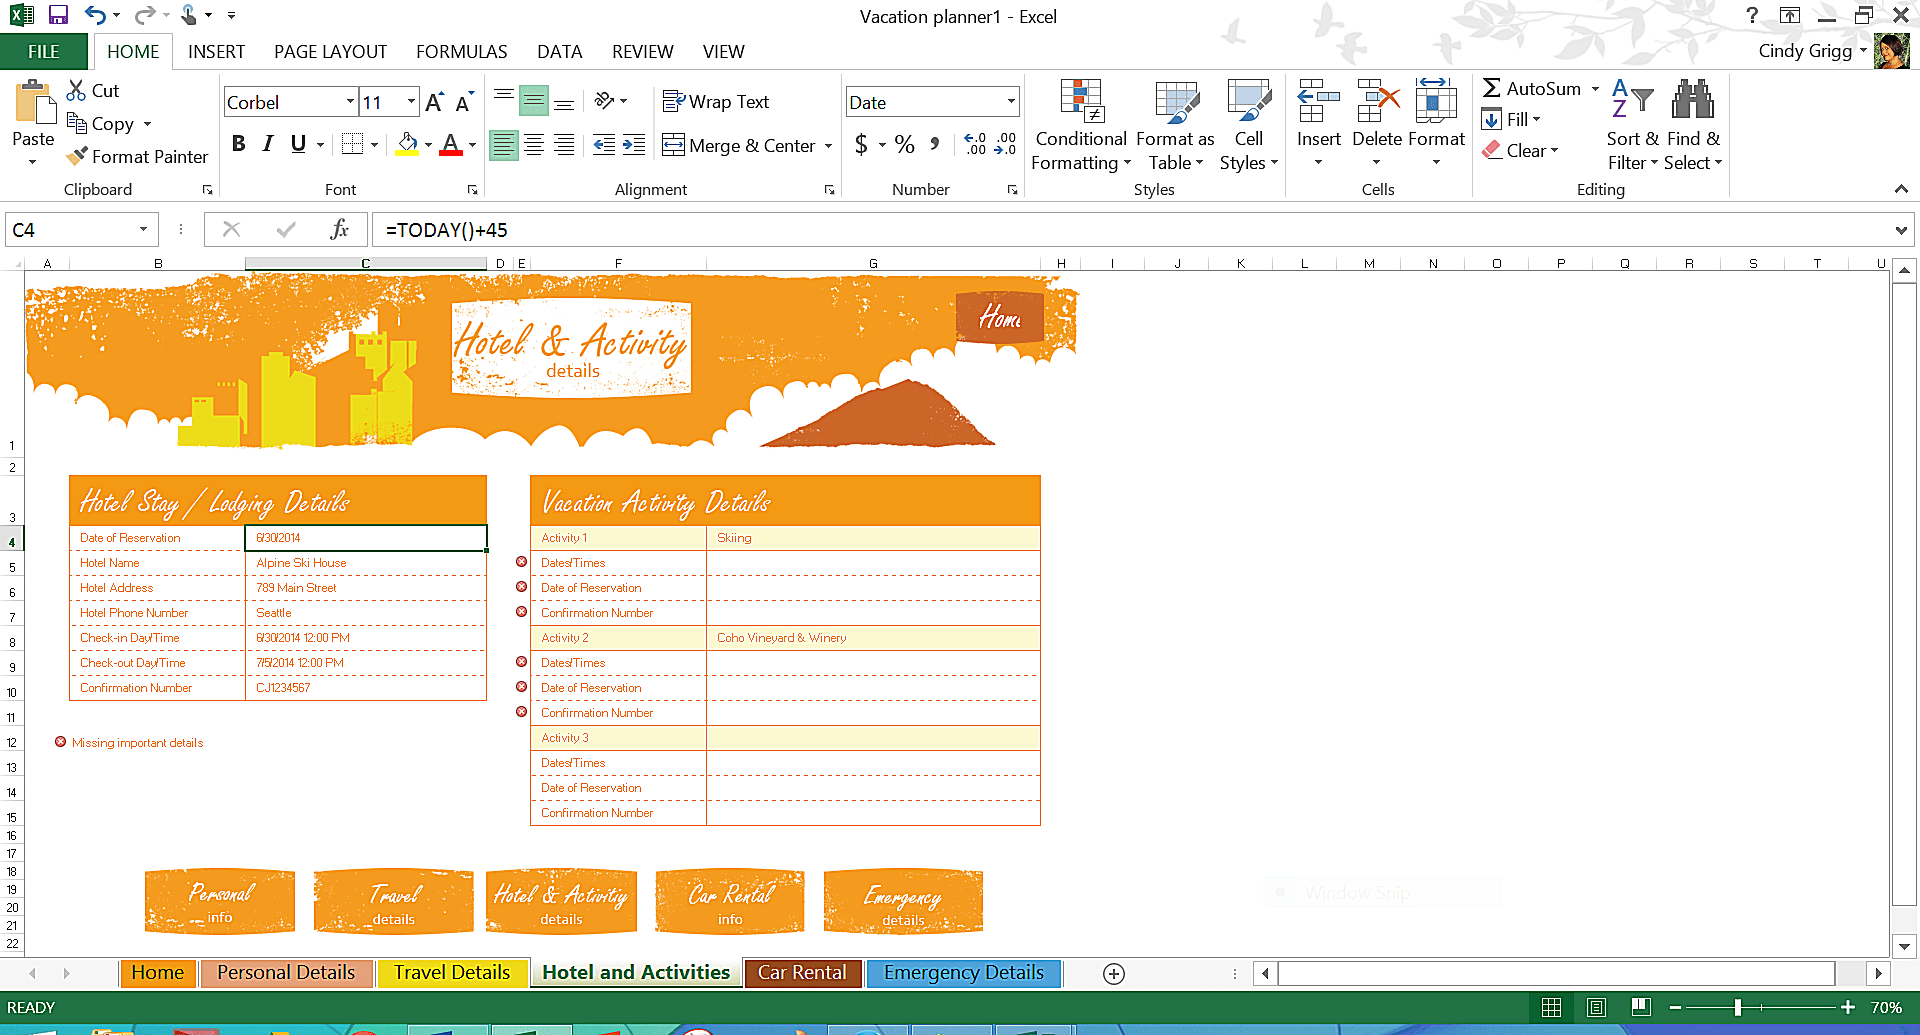 ways to use excel to plan a vacation